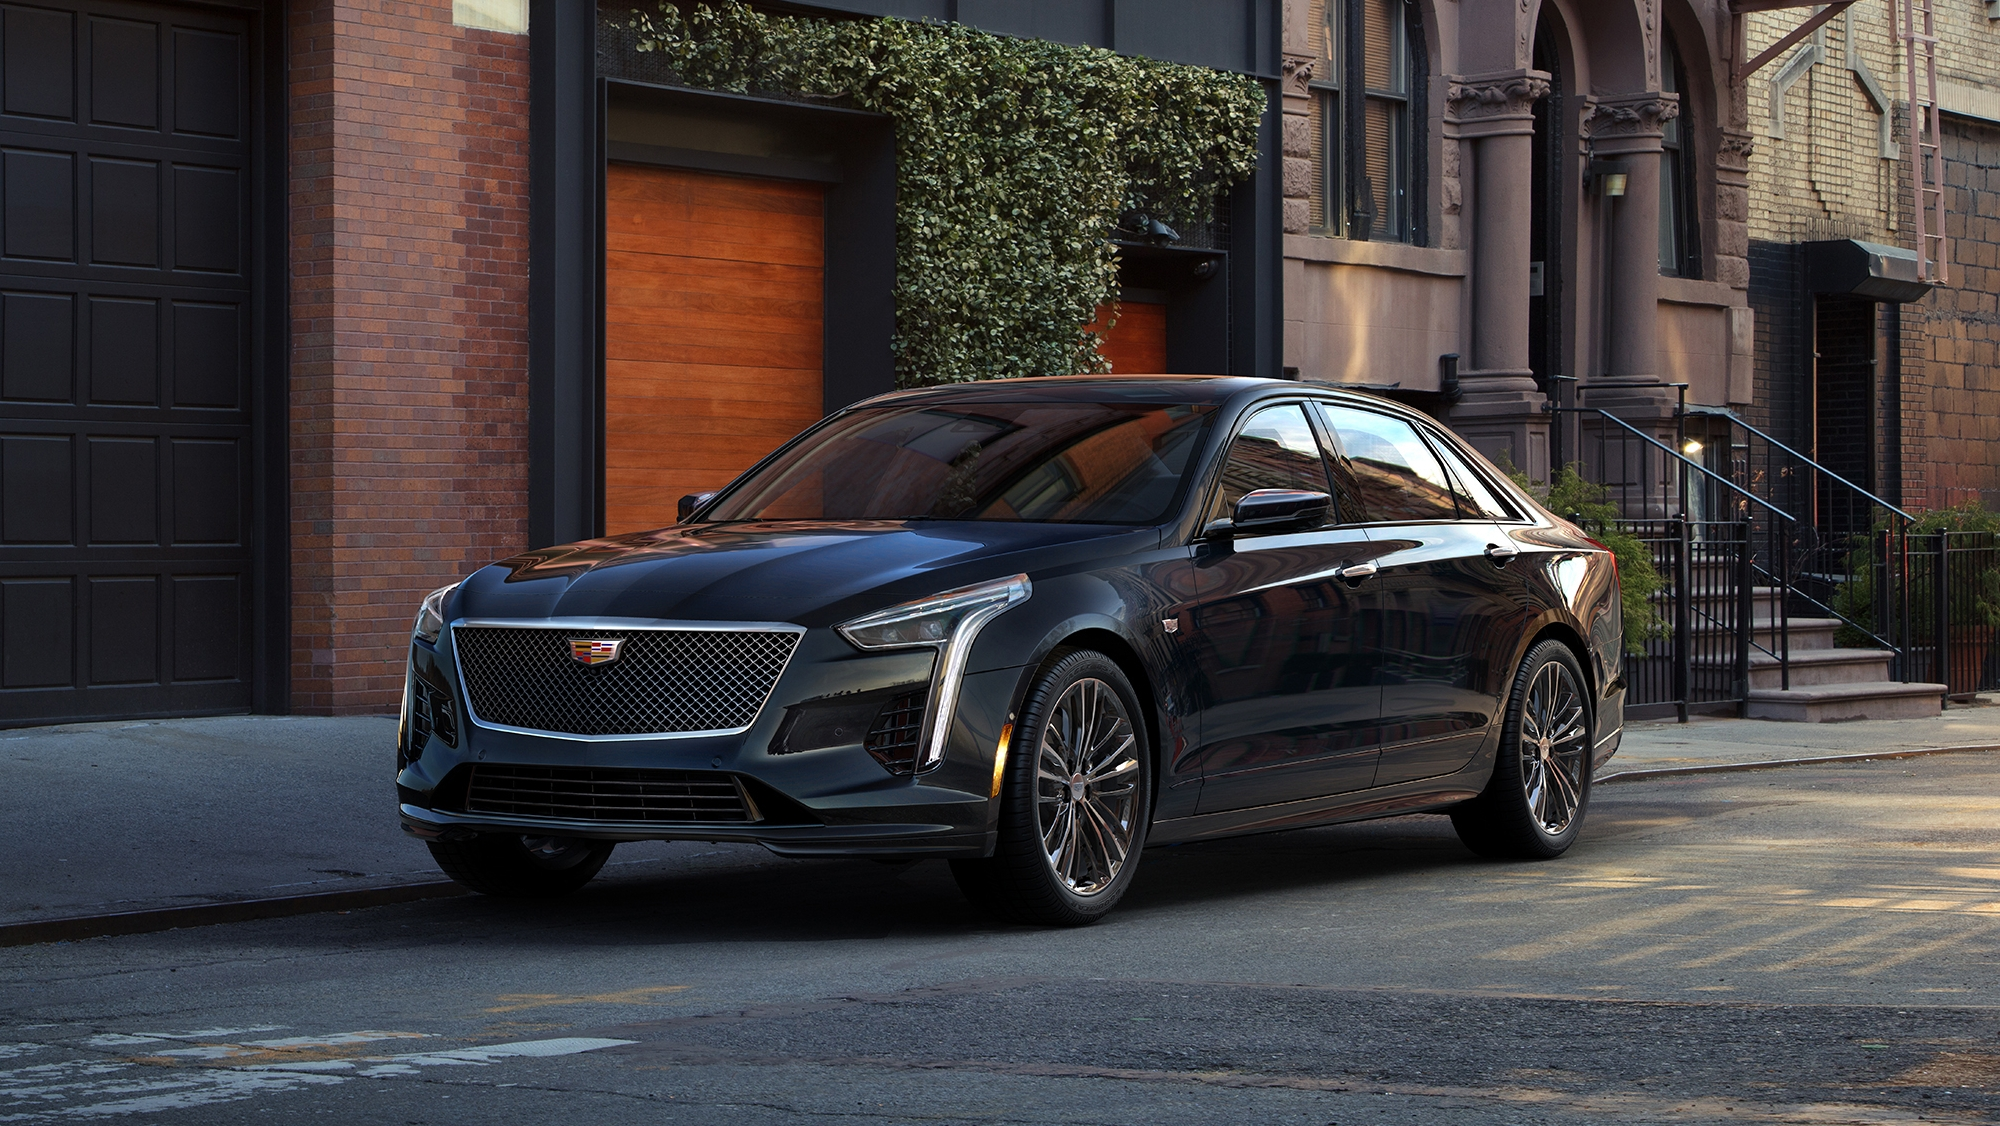 2019 Cadillac CT6 V-Sport Pictures, Photos, Wallpapers ...